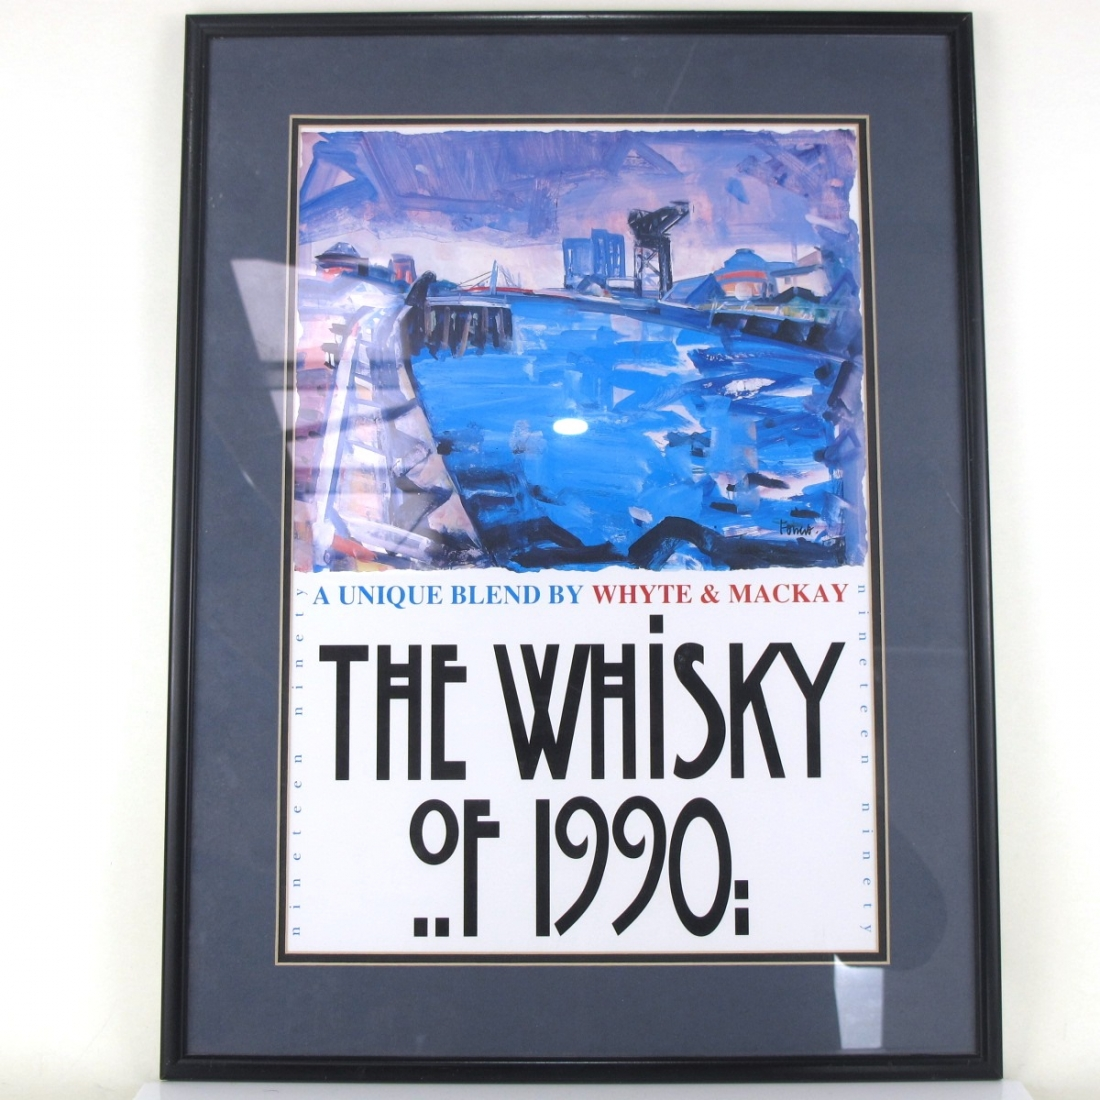 Whyte and Mackay The Whisky of 1990 Framed Poster